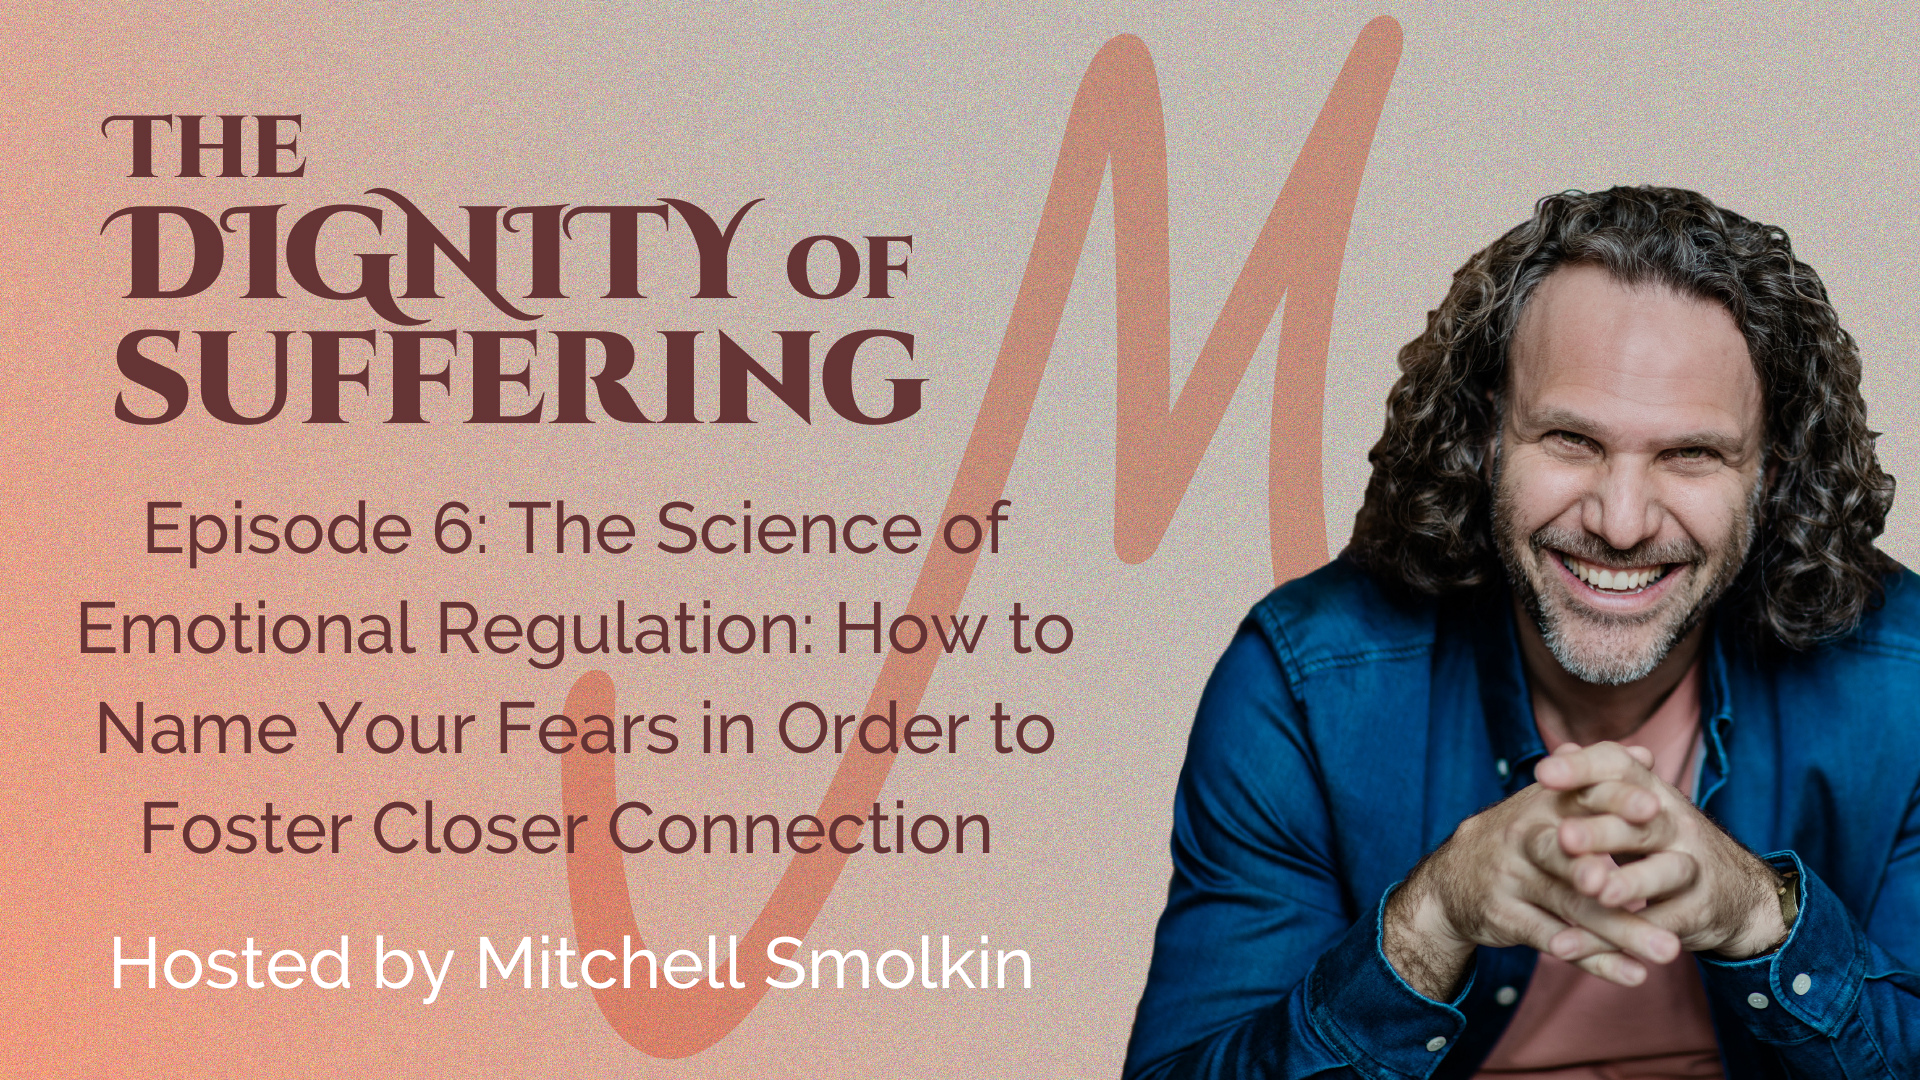 Episode 6:  The Science of Emotional Regulation: How to Name Your Fears in Order to Foster Closer Connection